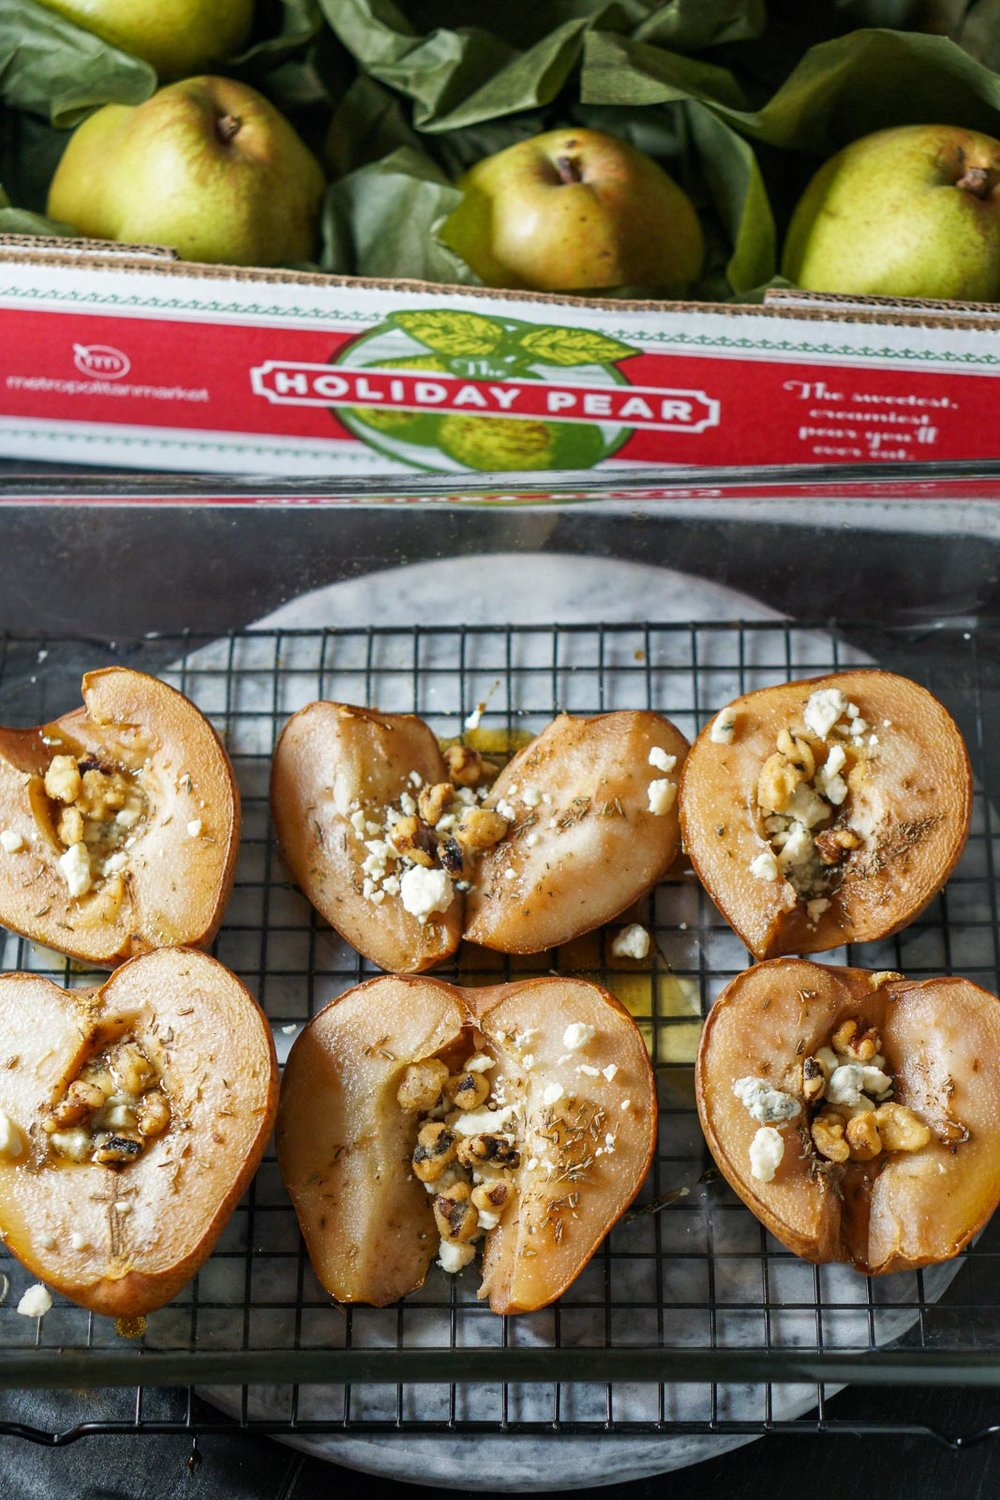 Pratt_Holiday-Pears_011.jpg